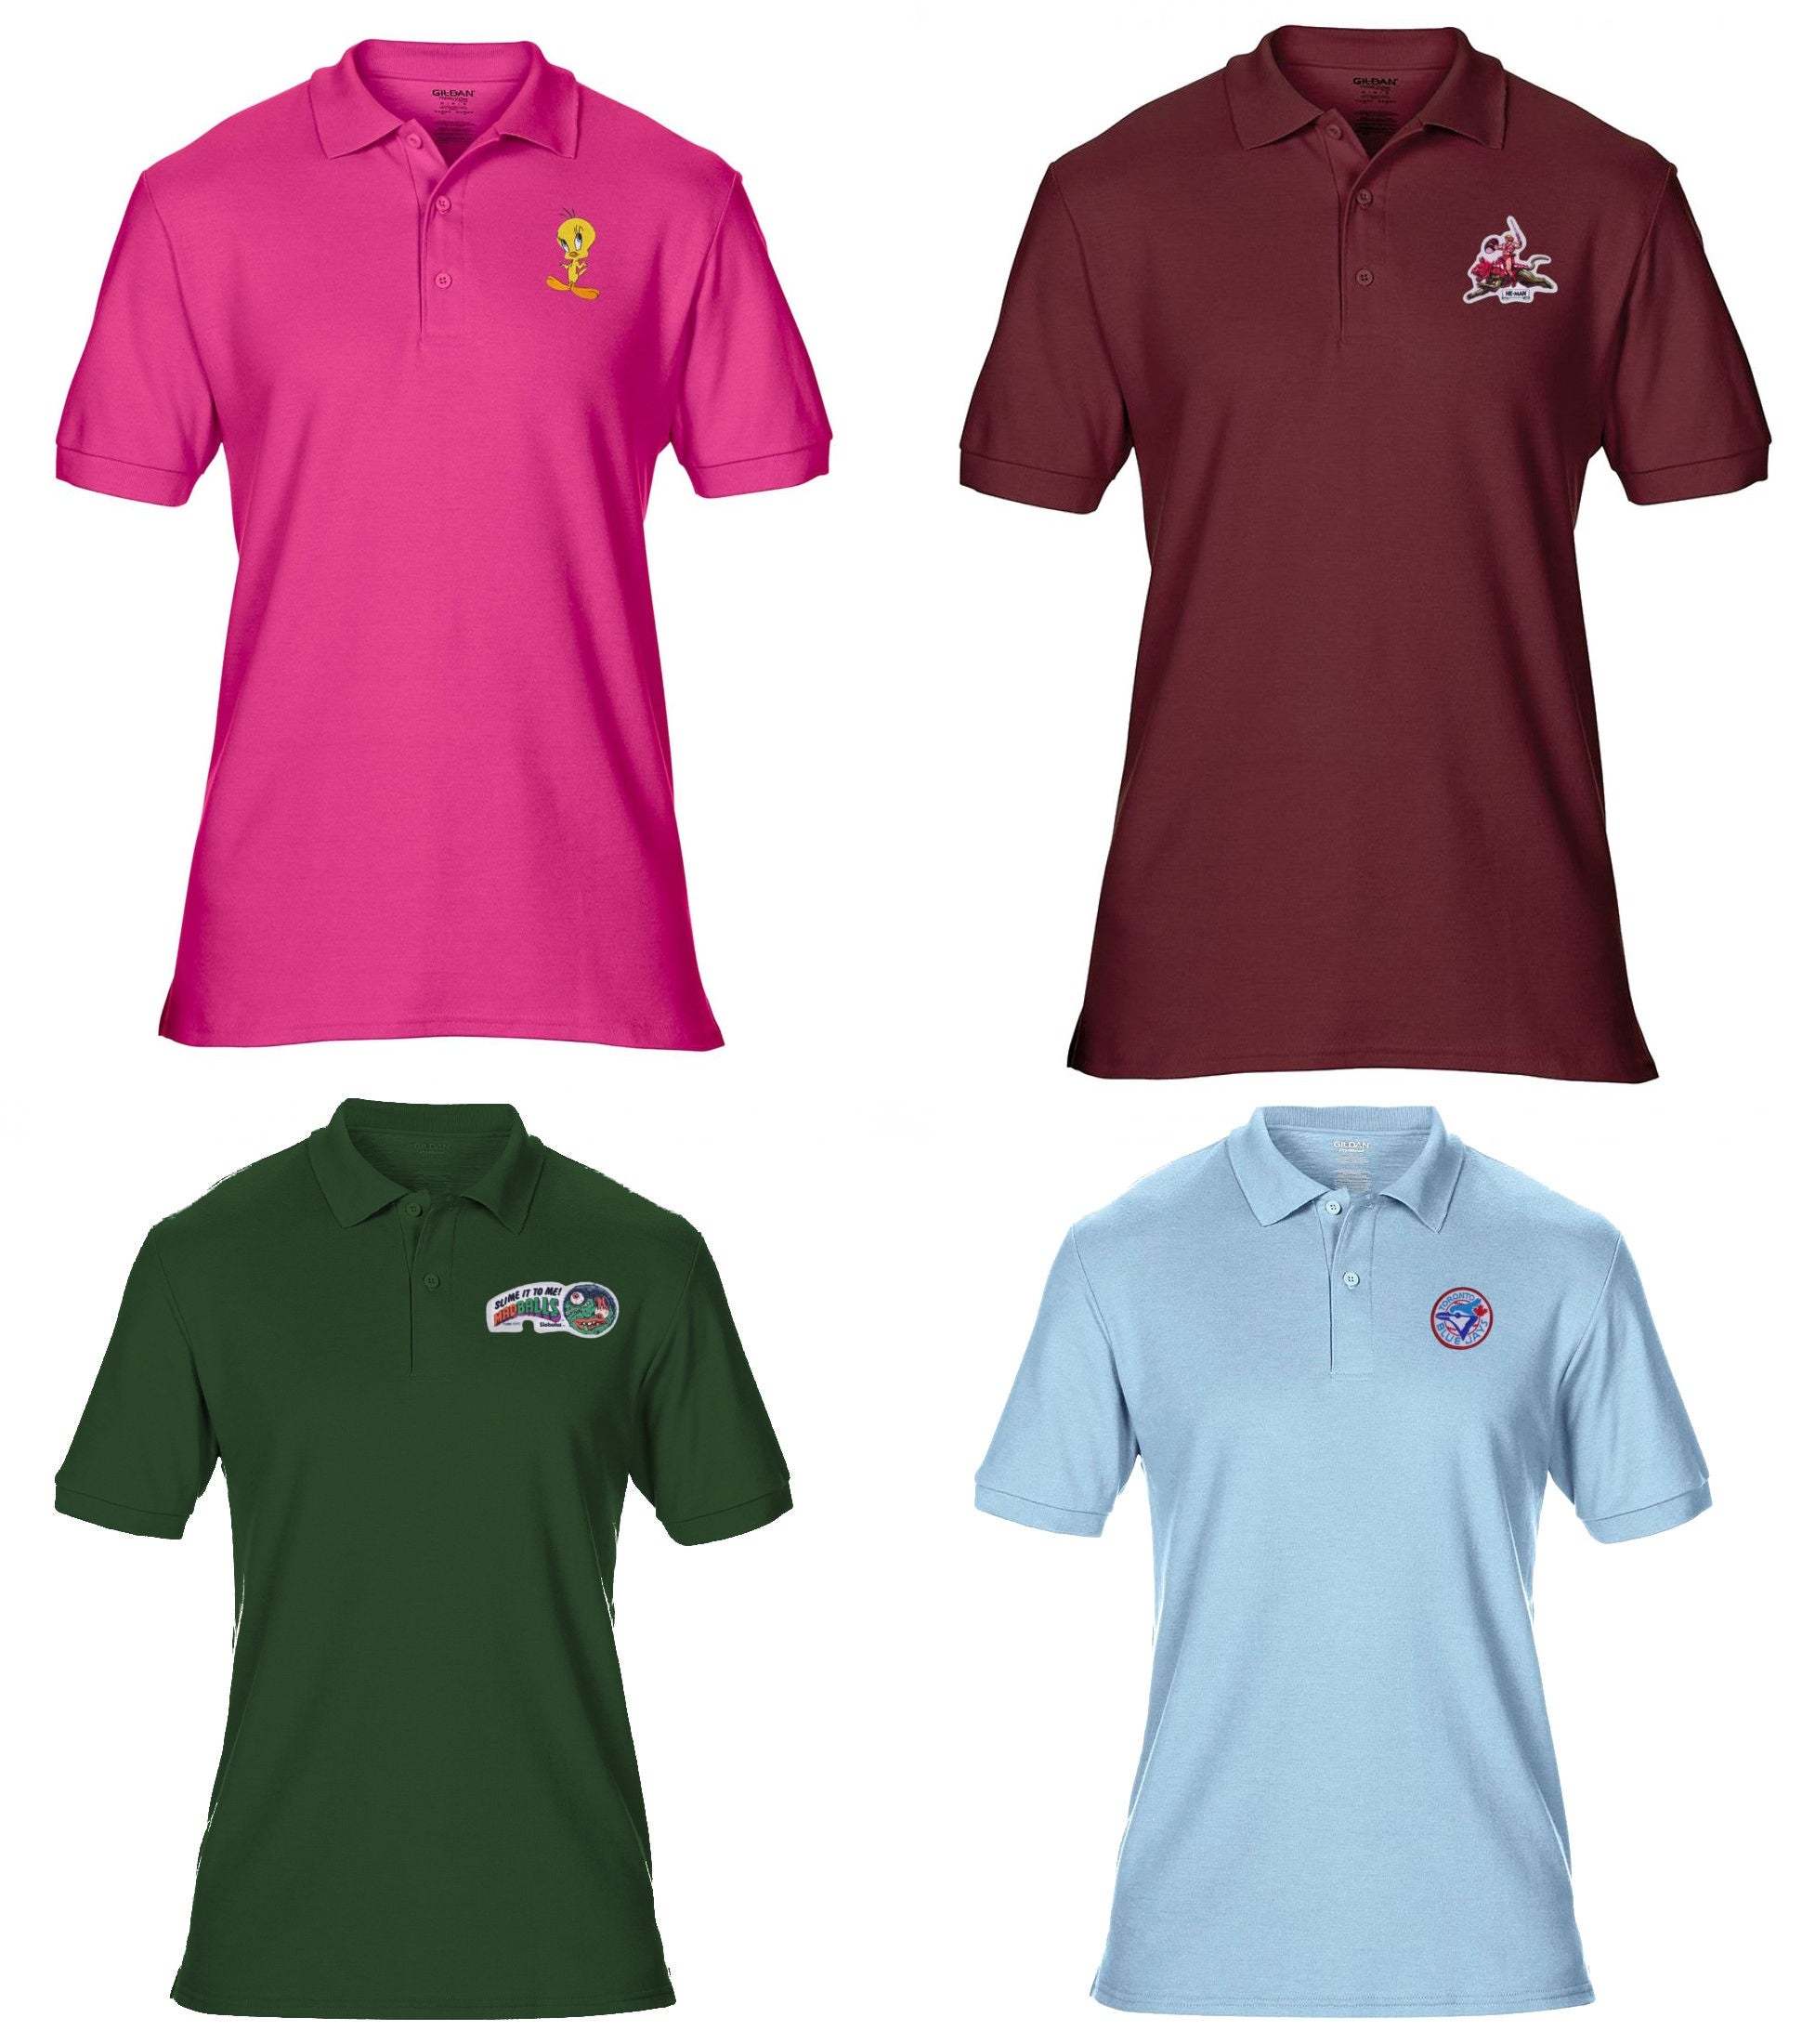 DryBlend Polo Examples